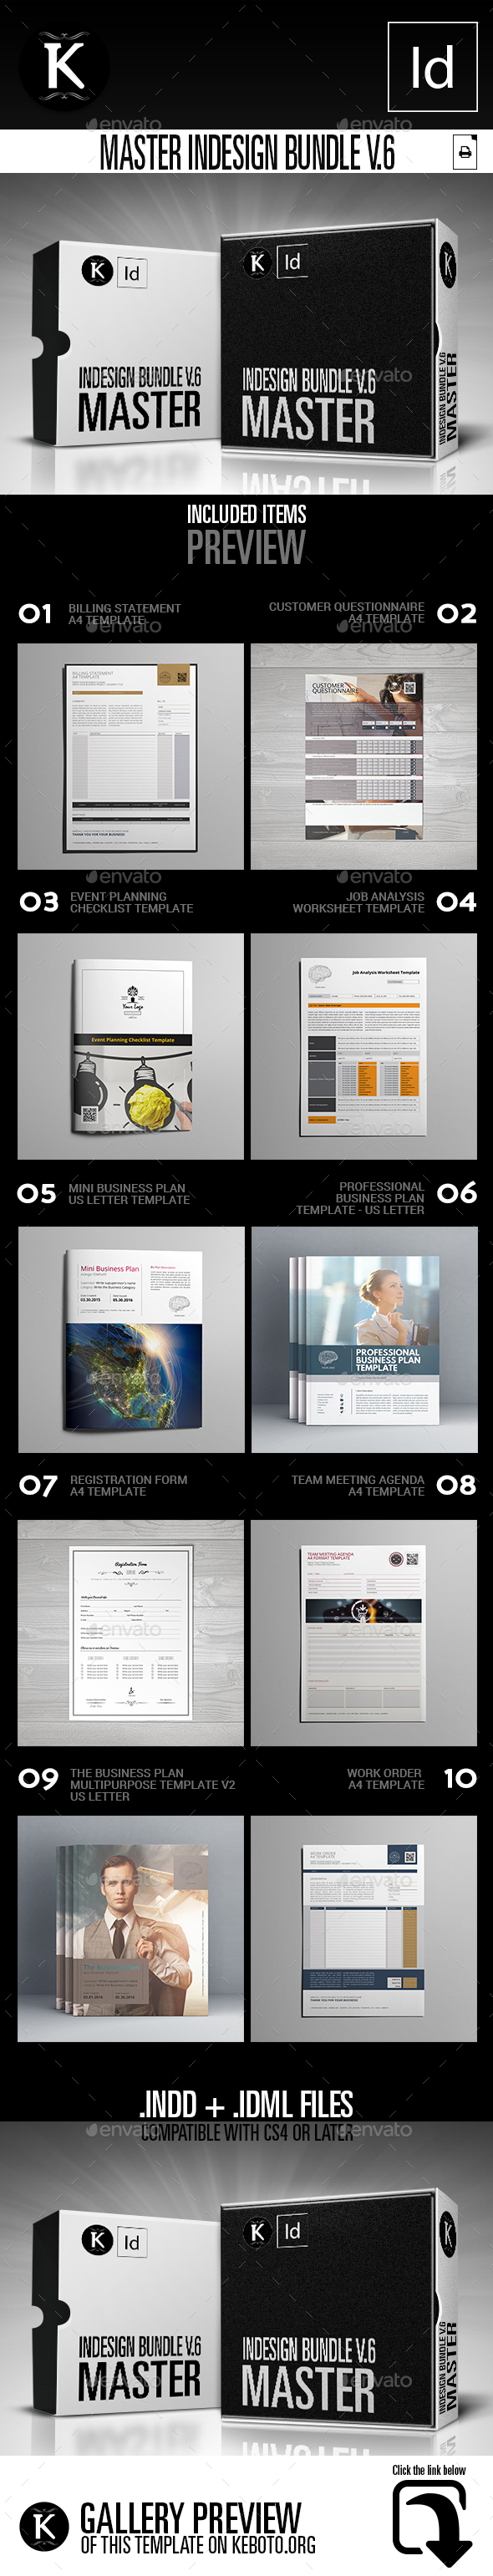 Master inDesign Bundle v.6 - Print Templates